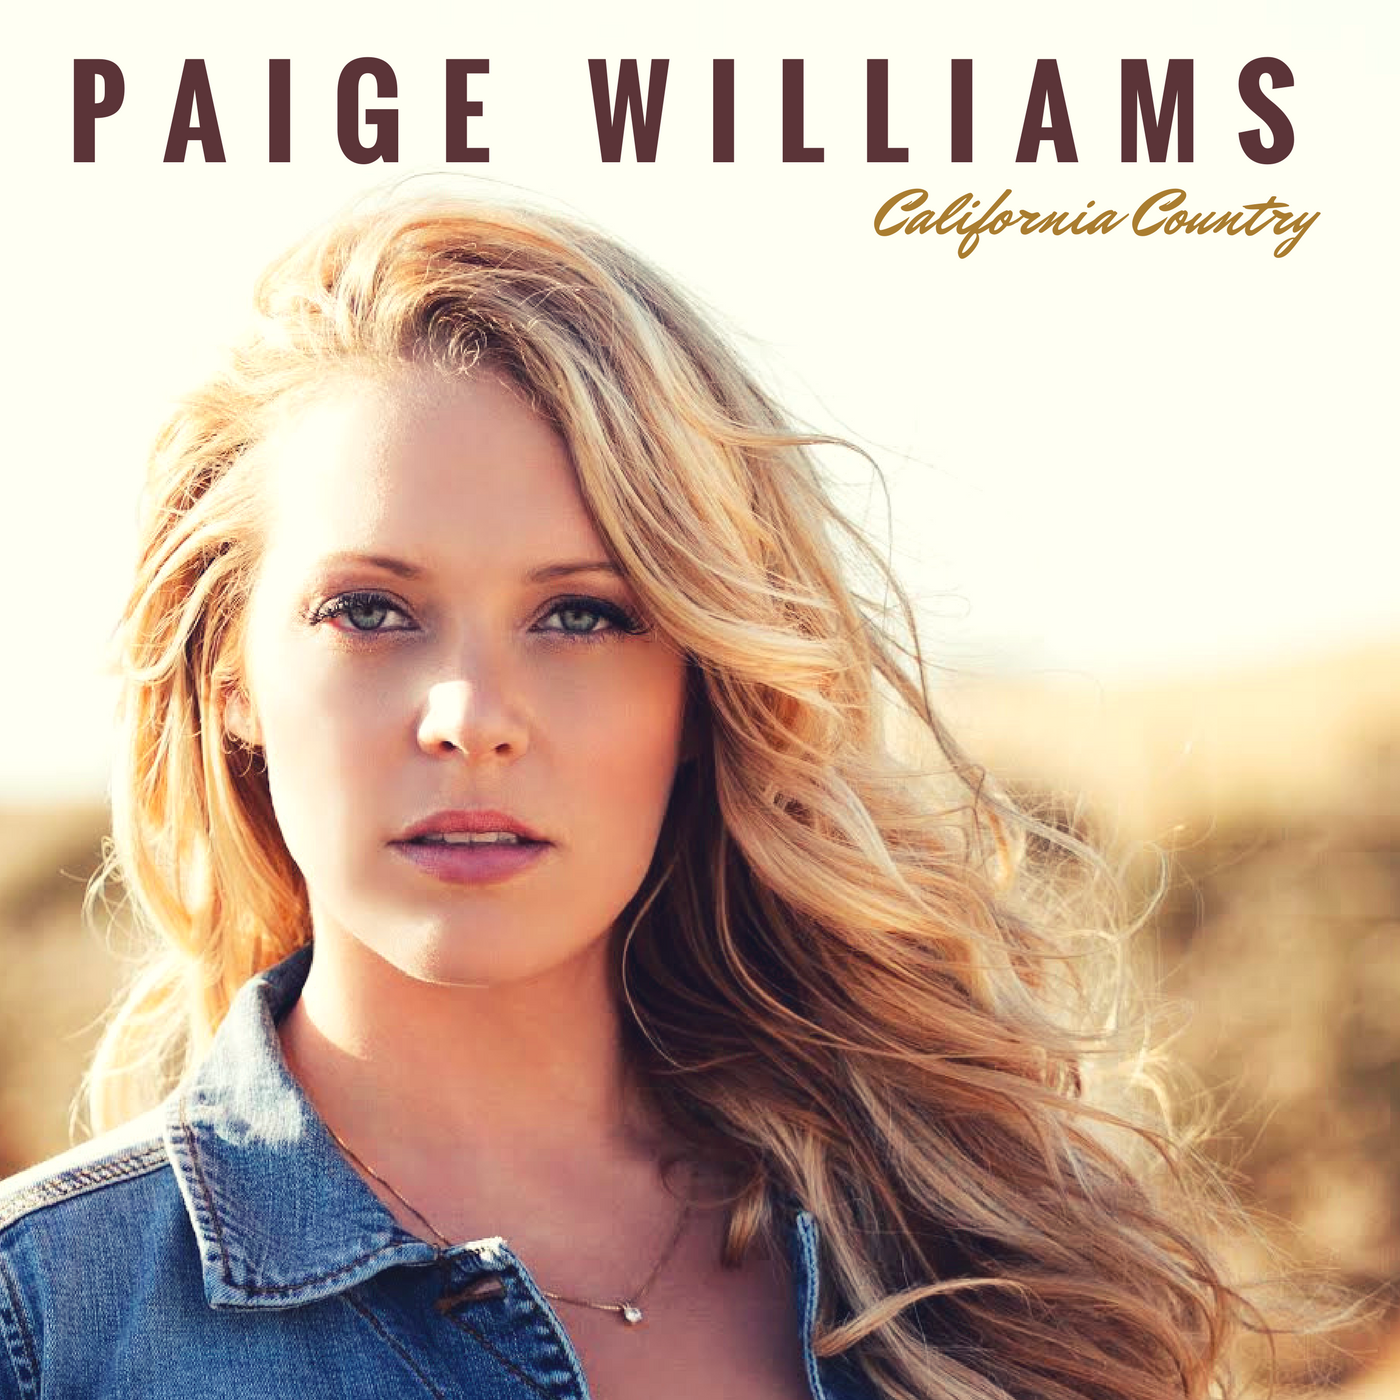 Copy of PAIGE WILLIAMS (4).png